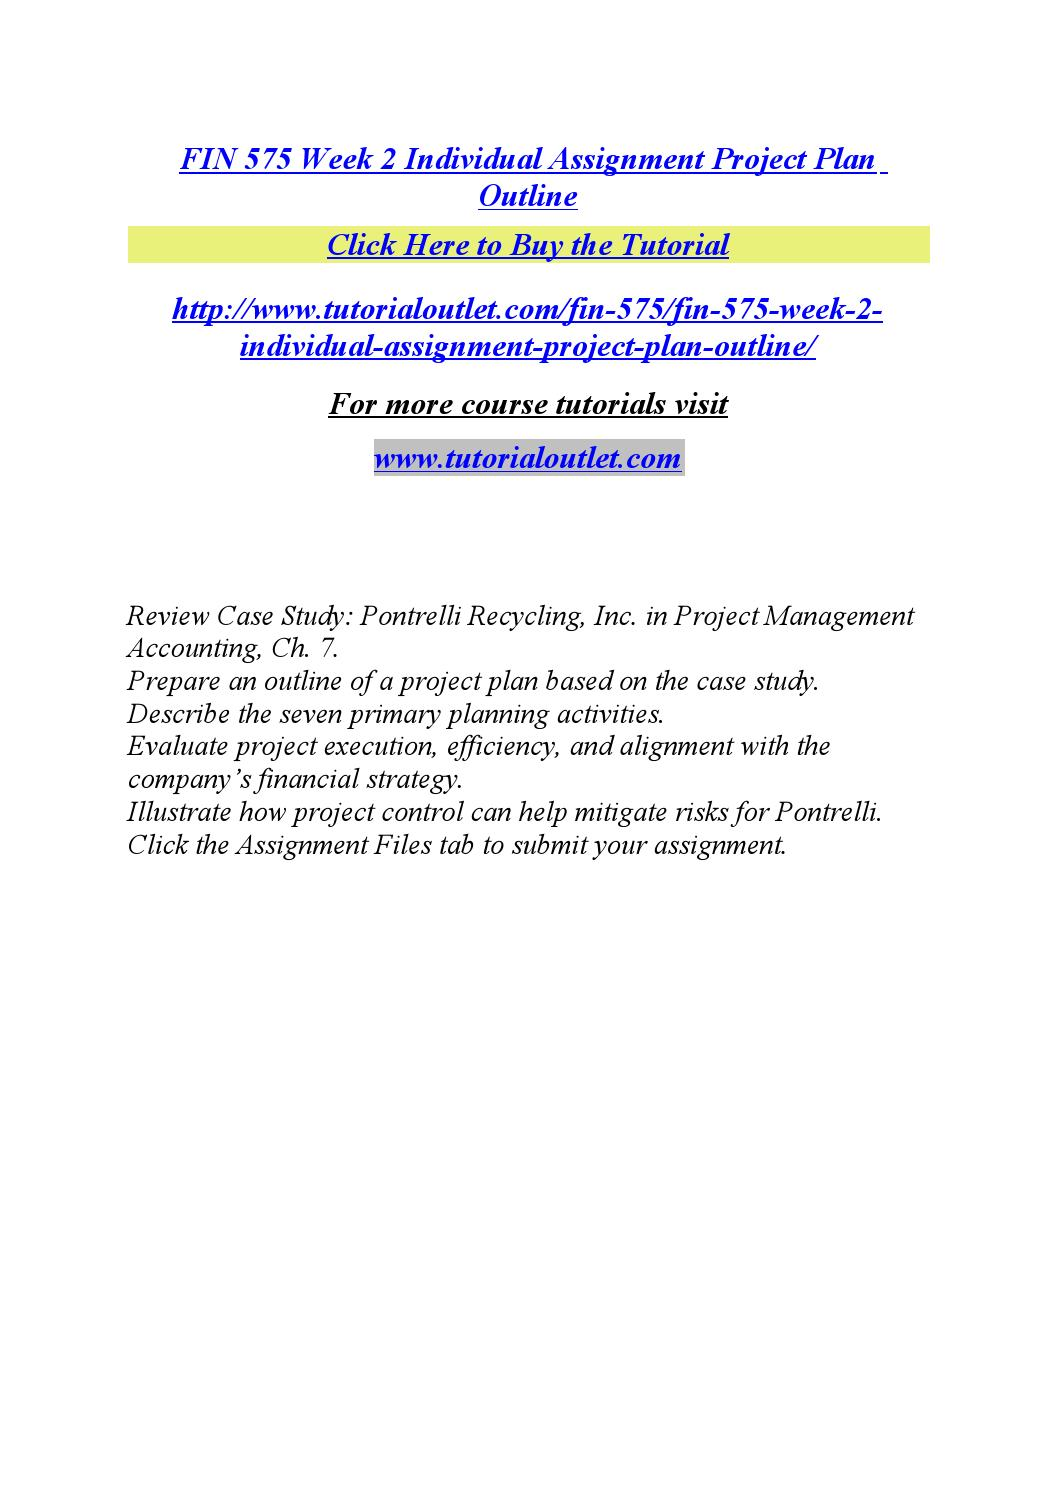 pontrelli recycling inc case study Fin 575 week 2 project plan outline review case study: pontrelli recycling, inc in project management accounting, ch 7.